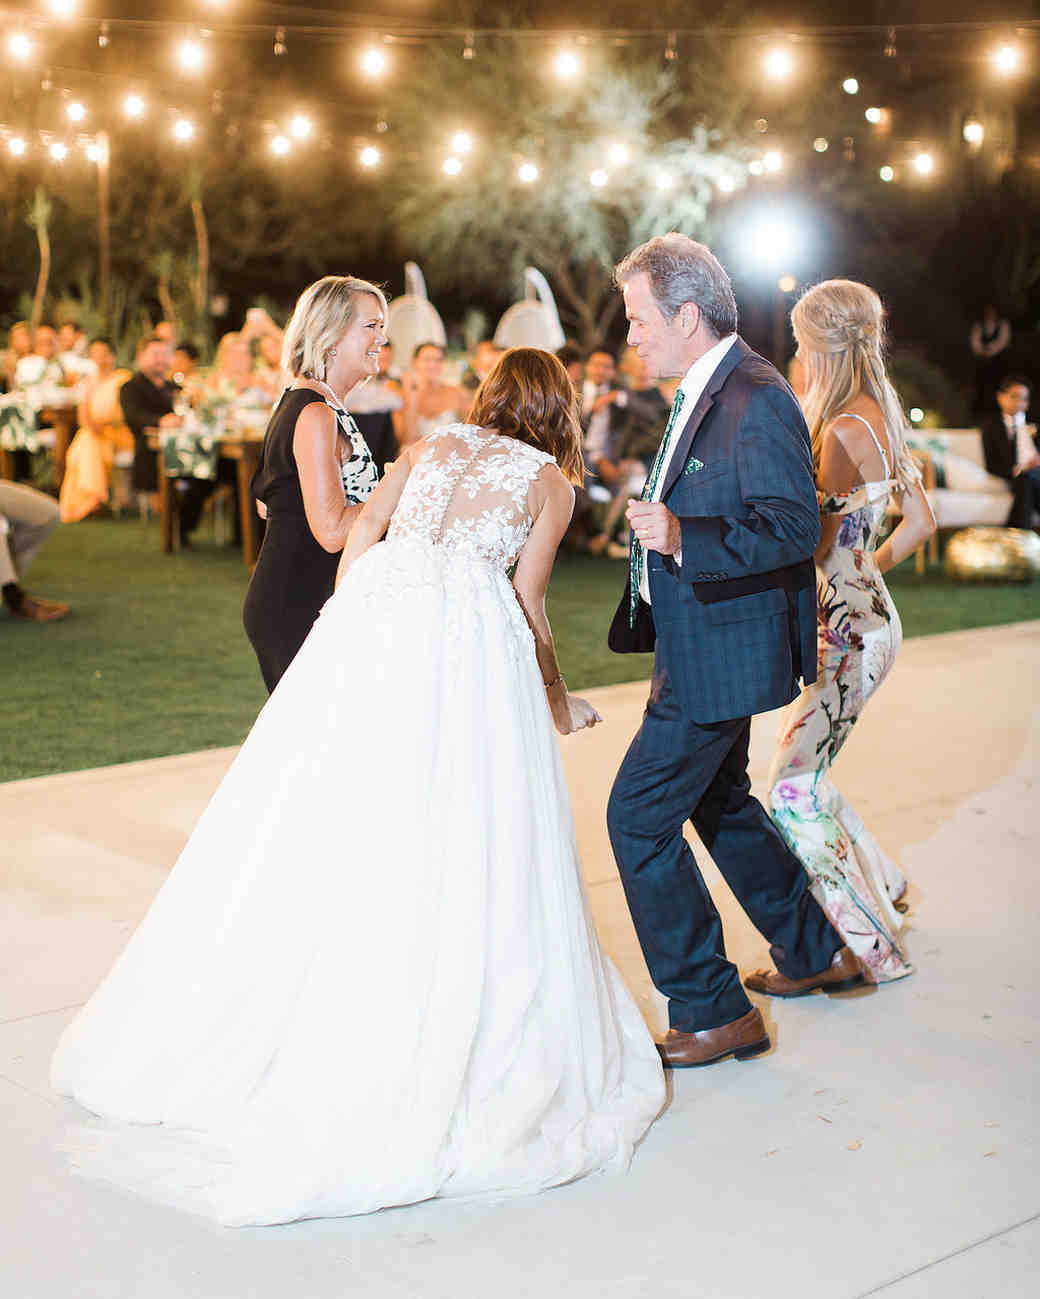 emily adhir wedding couple dancing with family